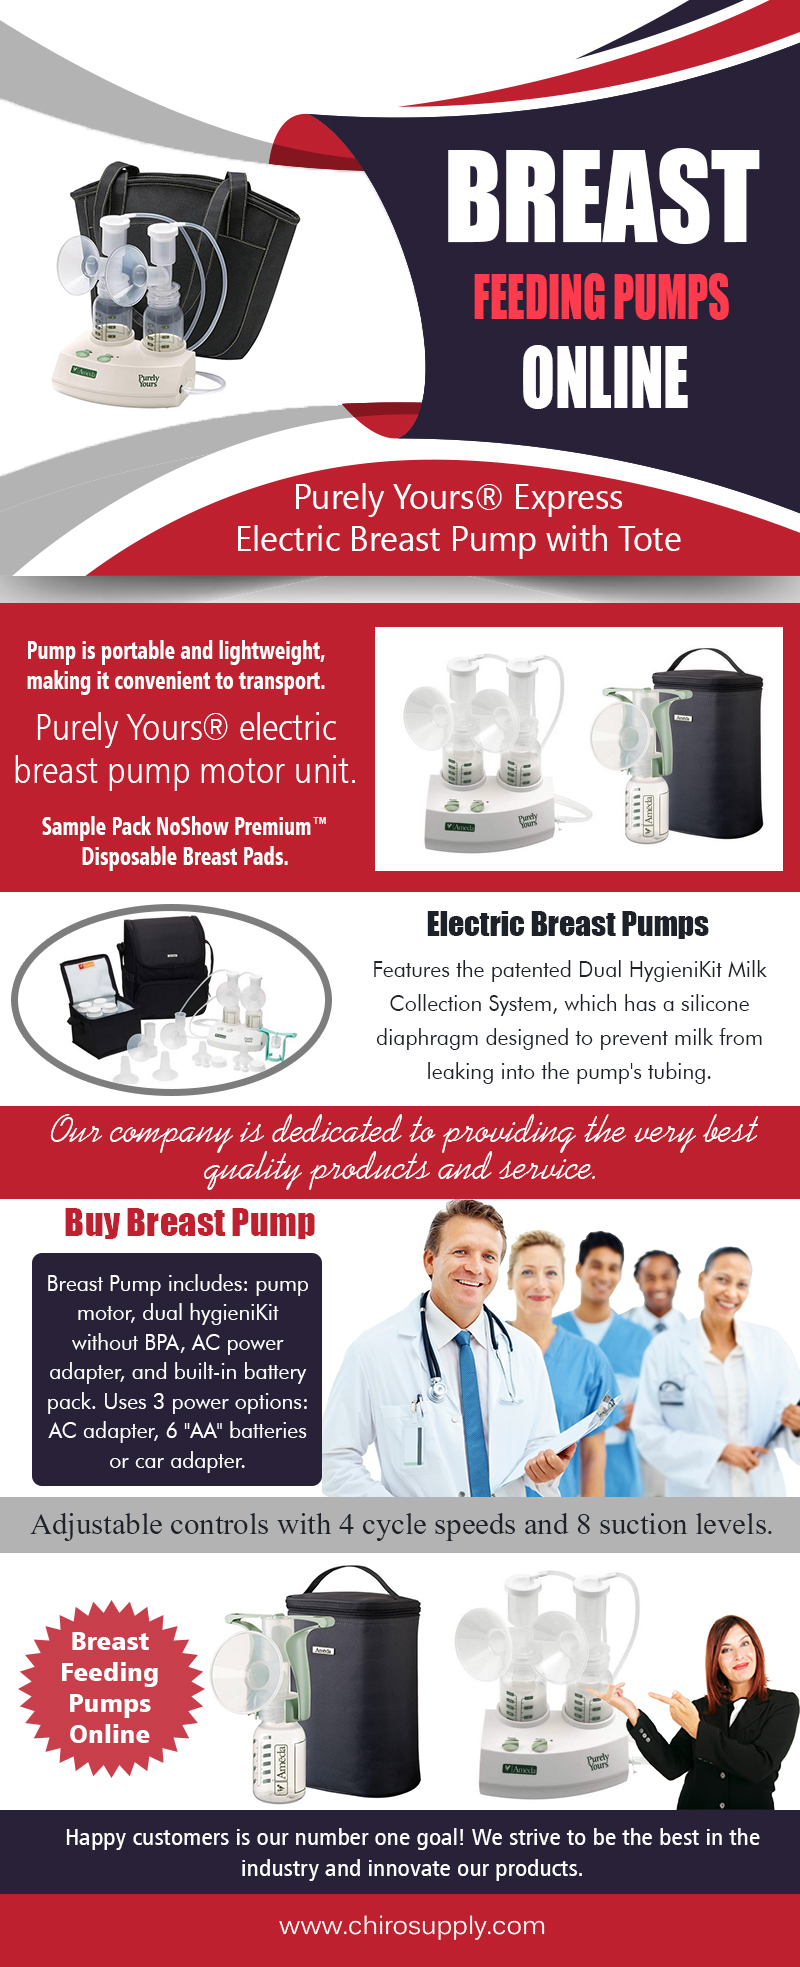 Breast Feeding Pumps Online | 8775639660 | chirosupply.com